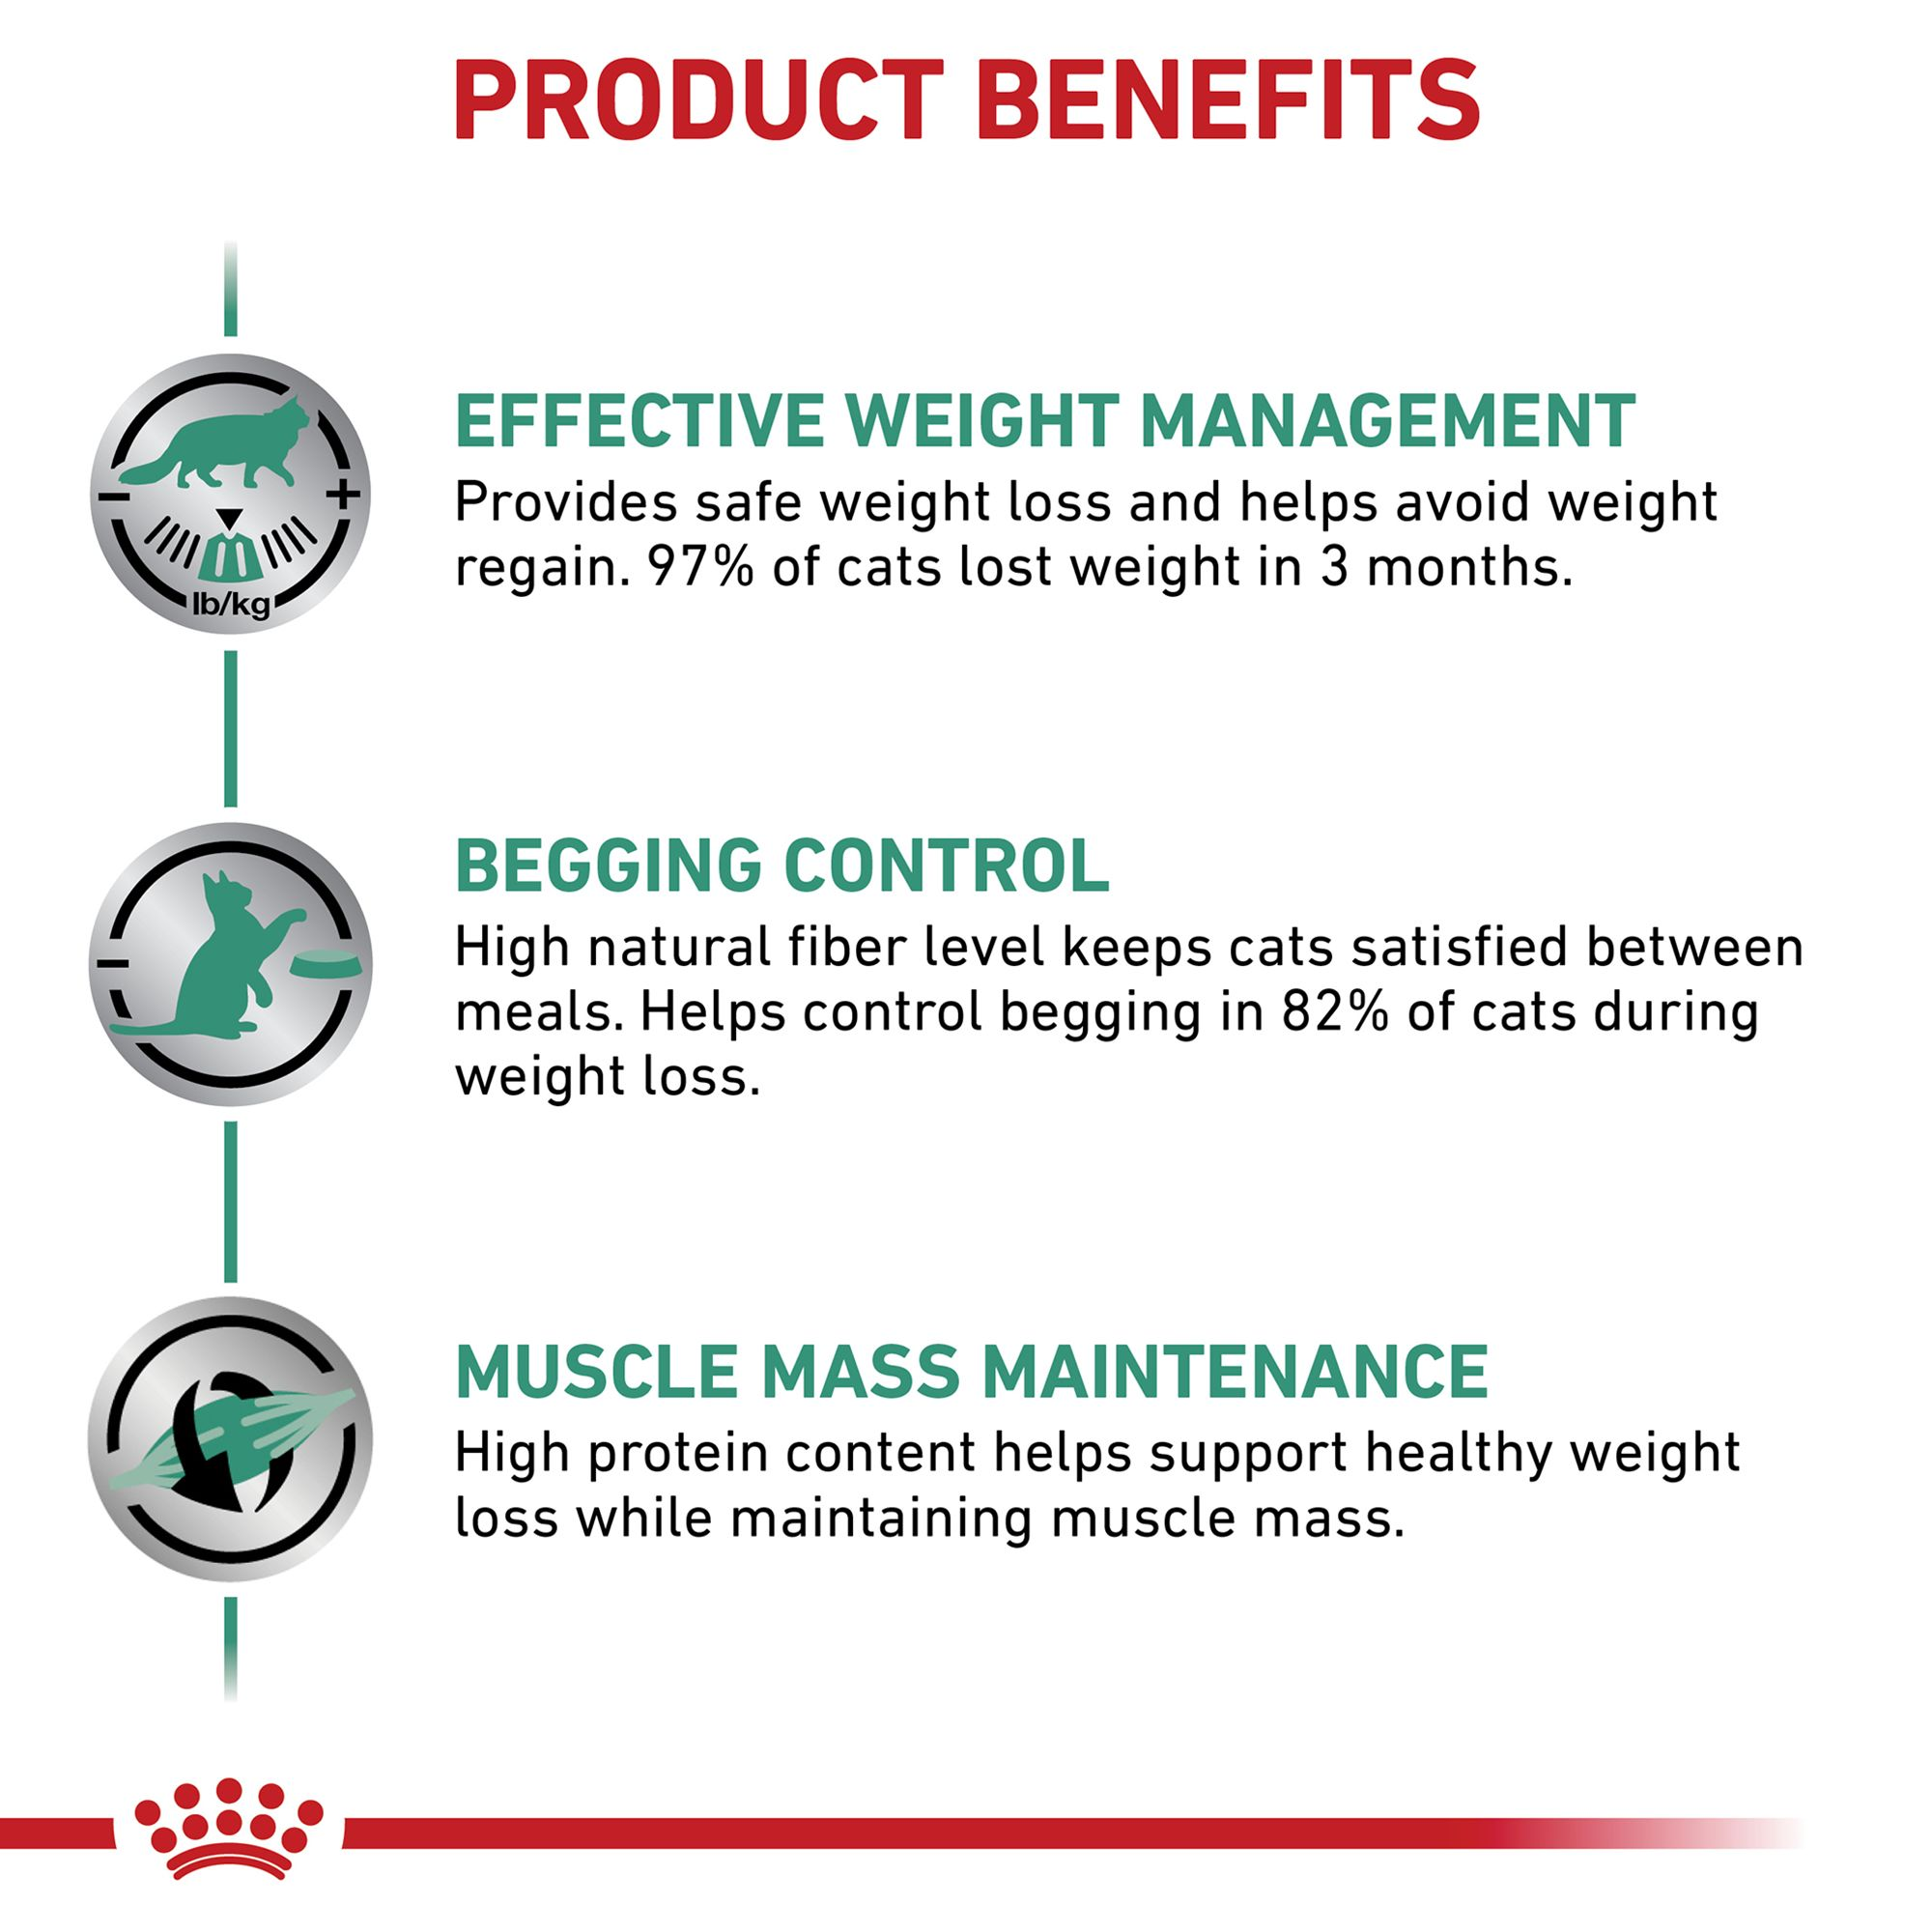 safe weight loss rate for cats